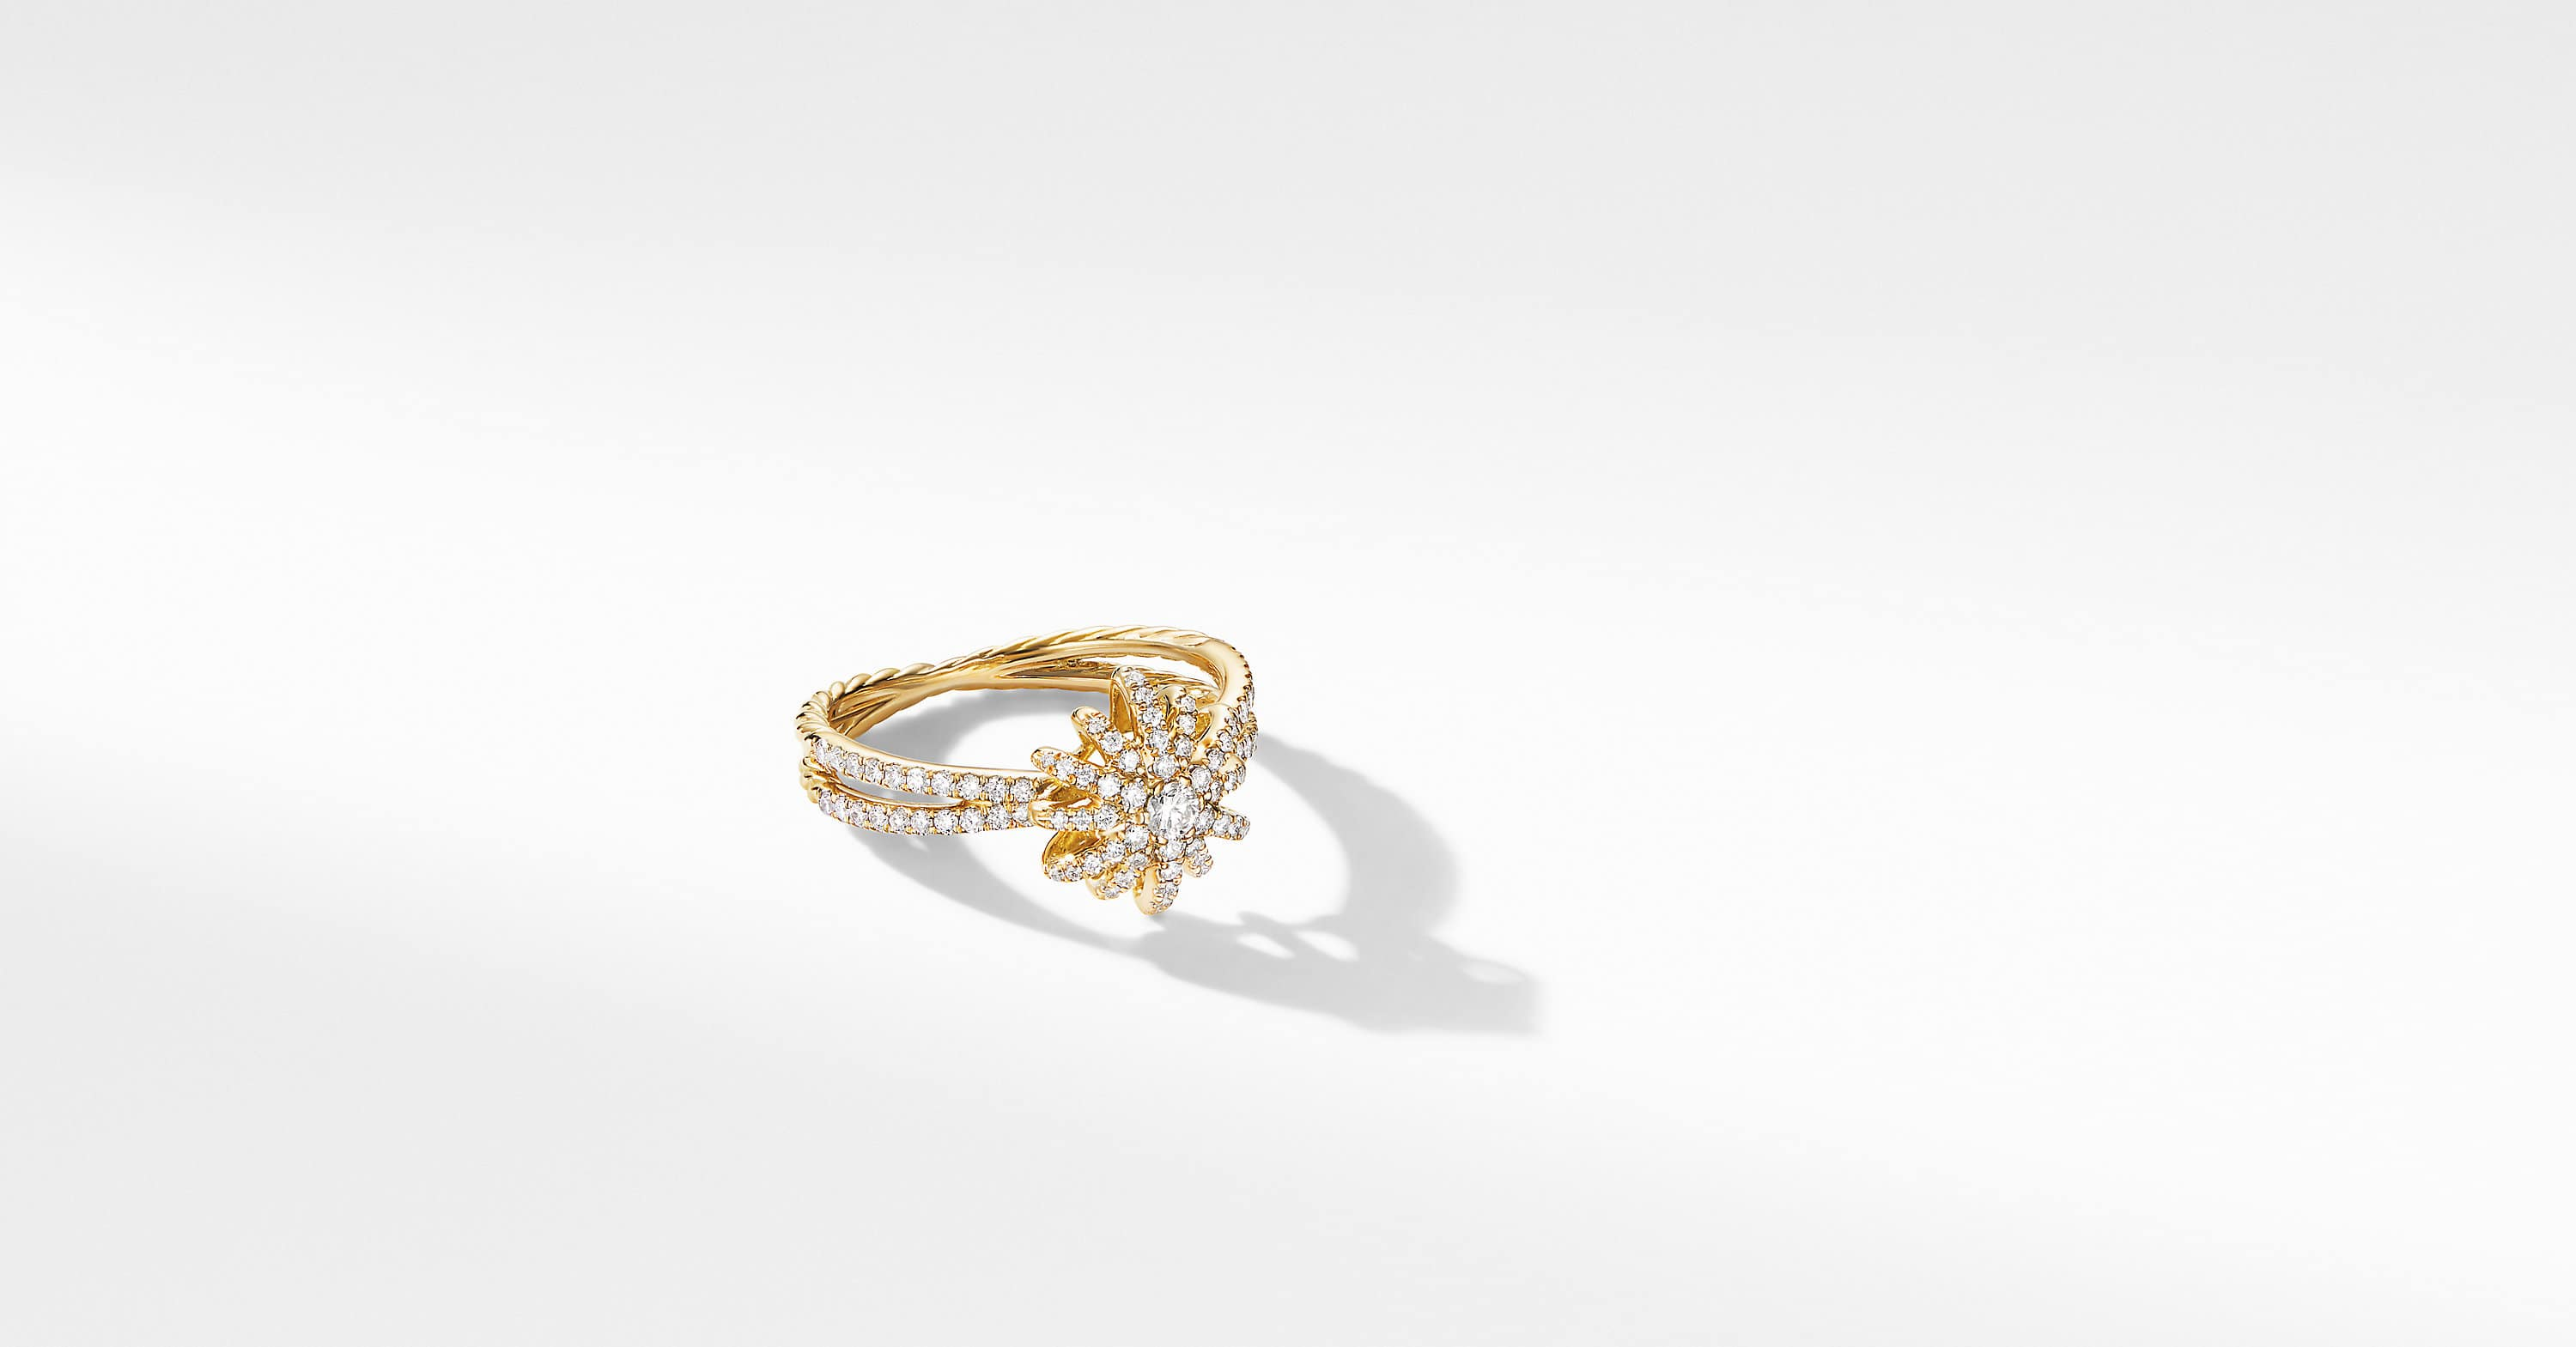 Starbust Ring in 18K Yellow Gold with Pavé